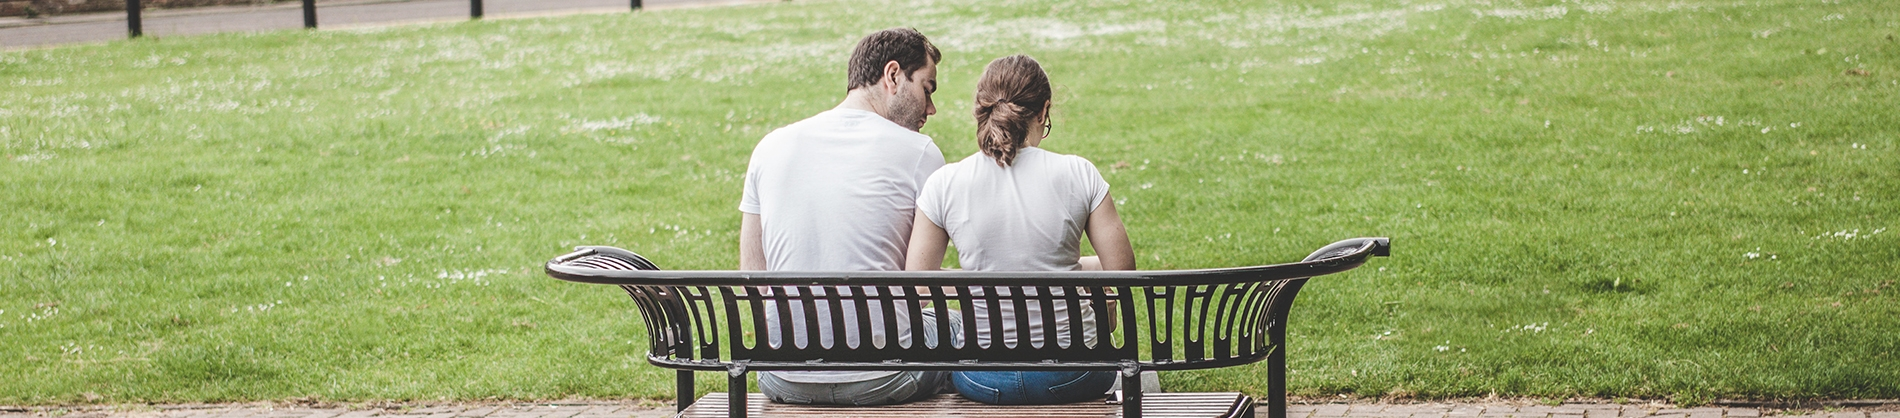 Two people sat on a park bench